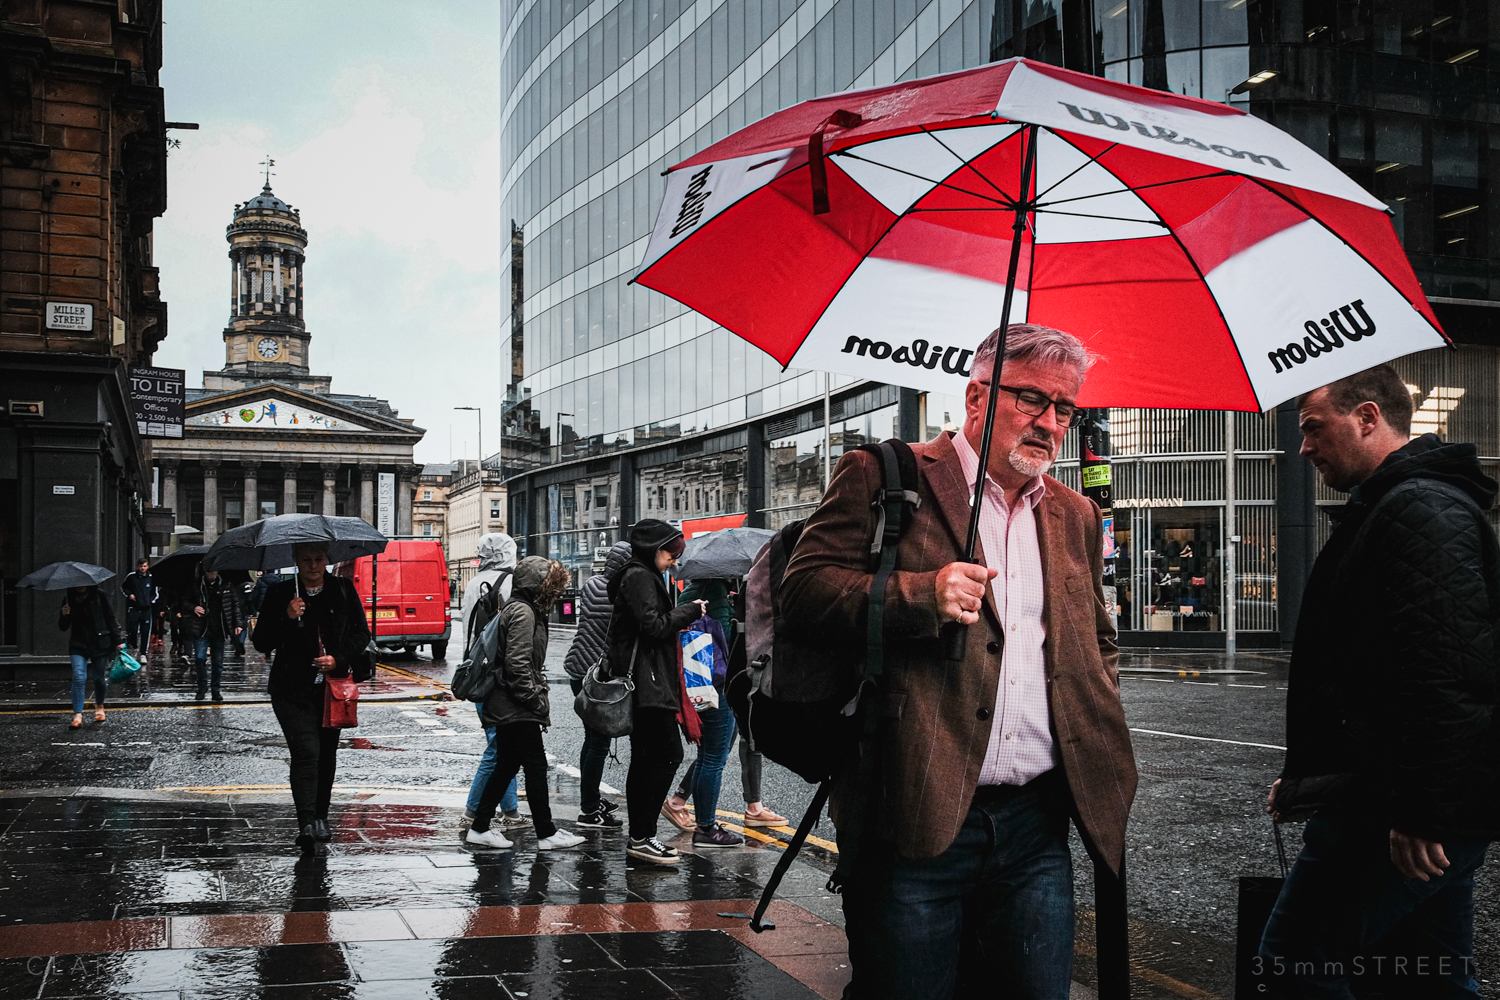 003_35mmStreet-Rainy-Friday-Glasgow.jpg